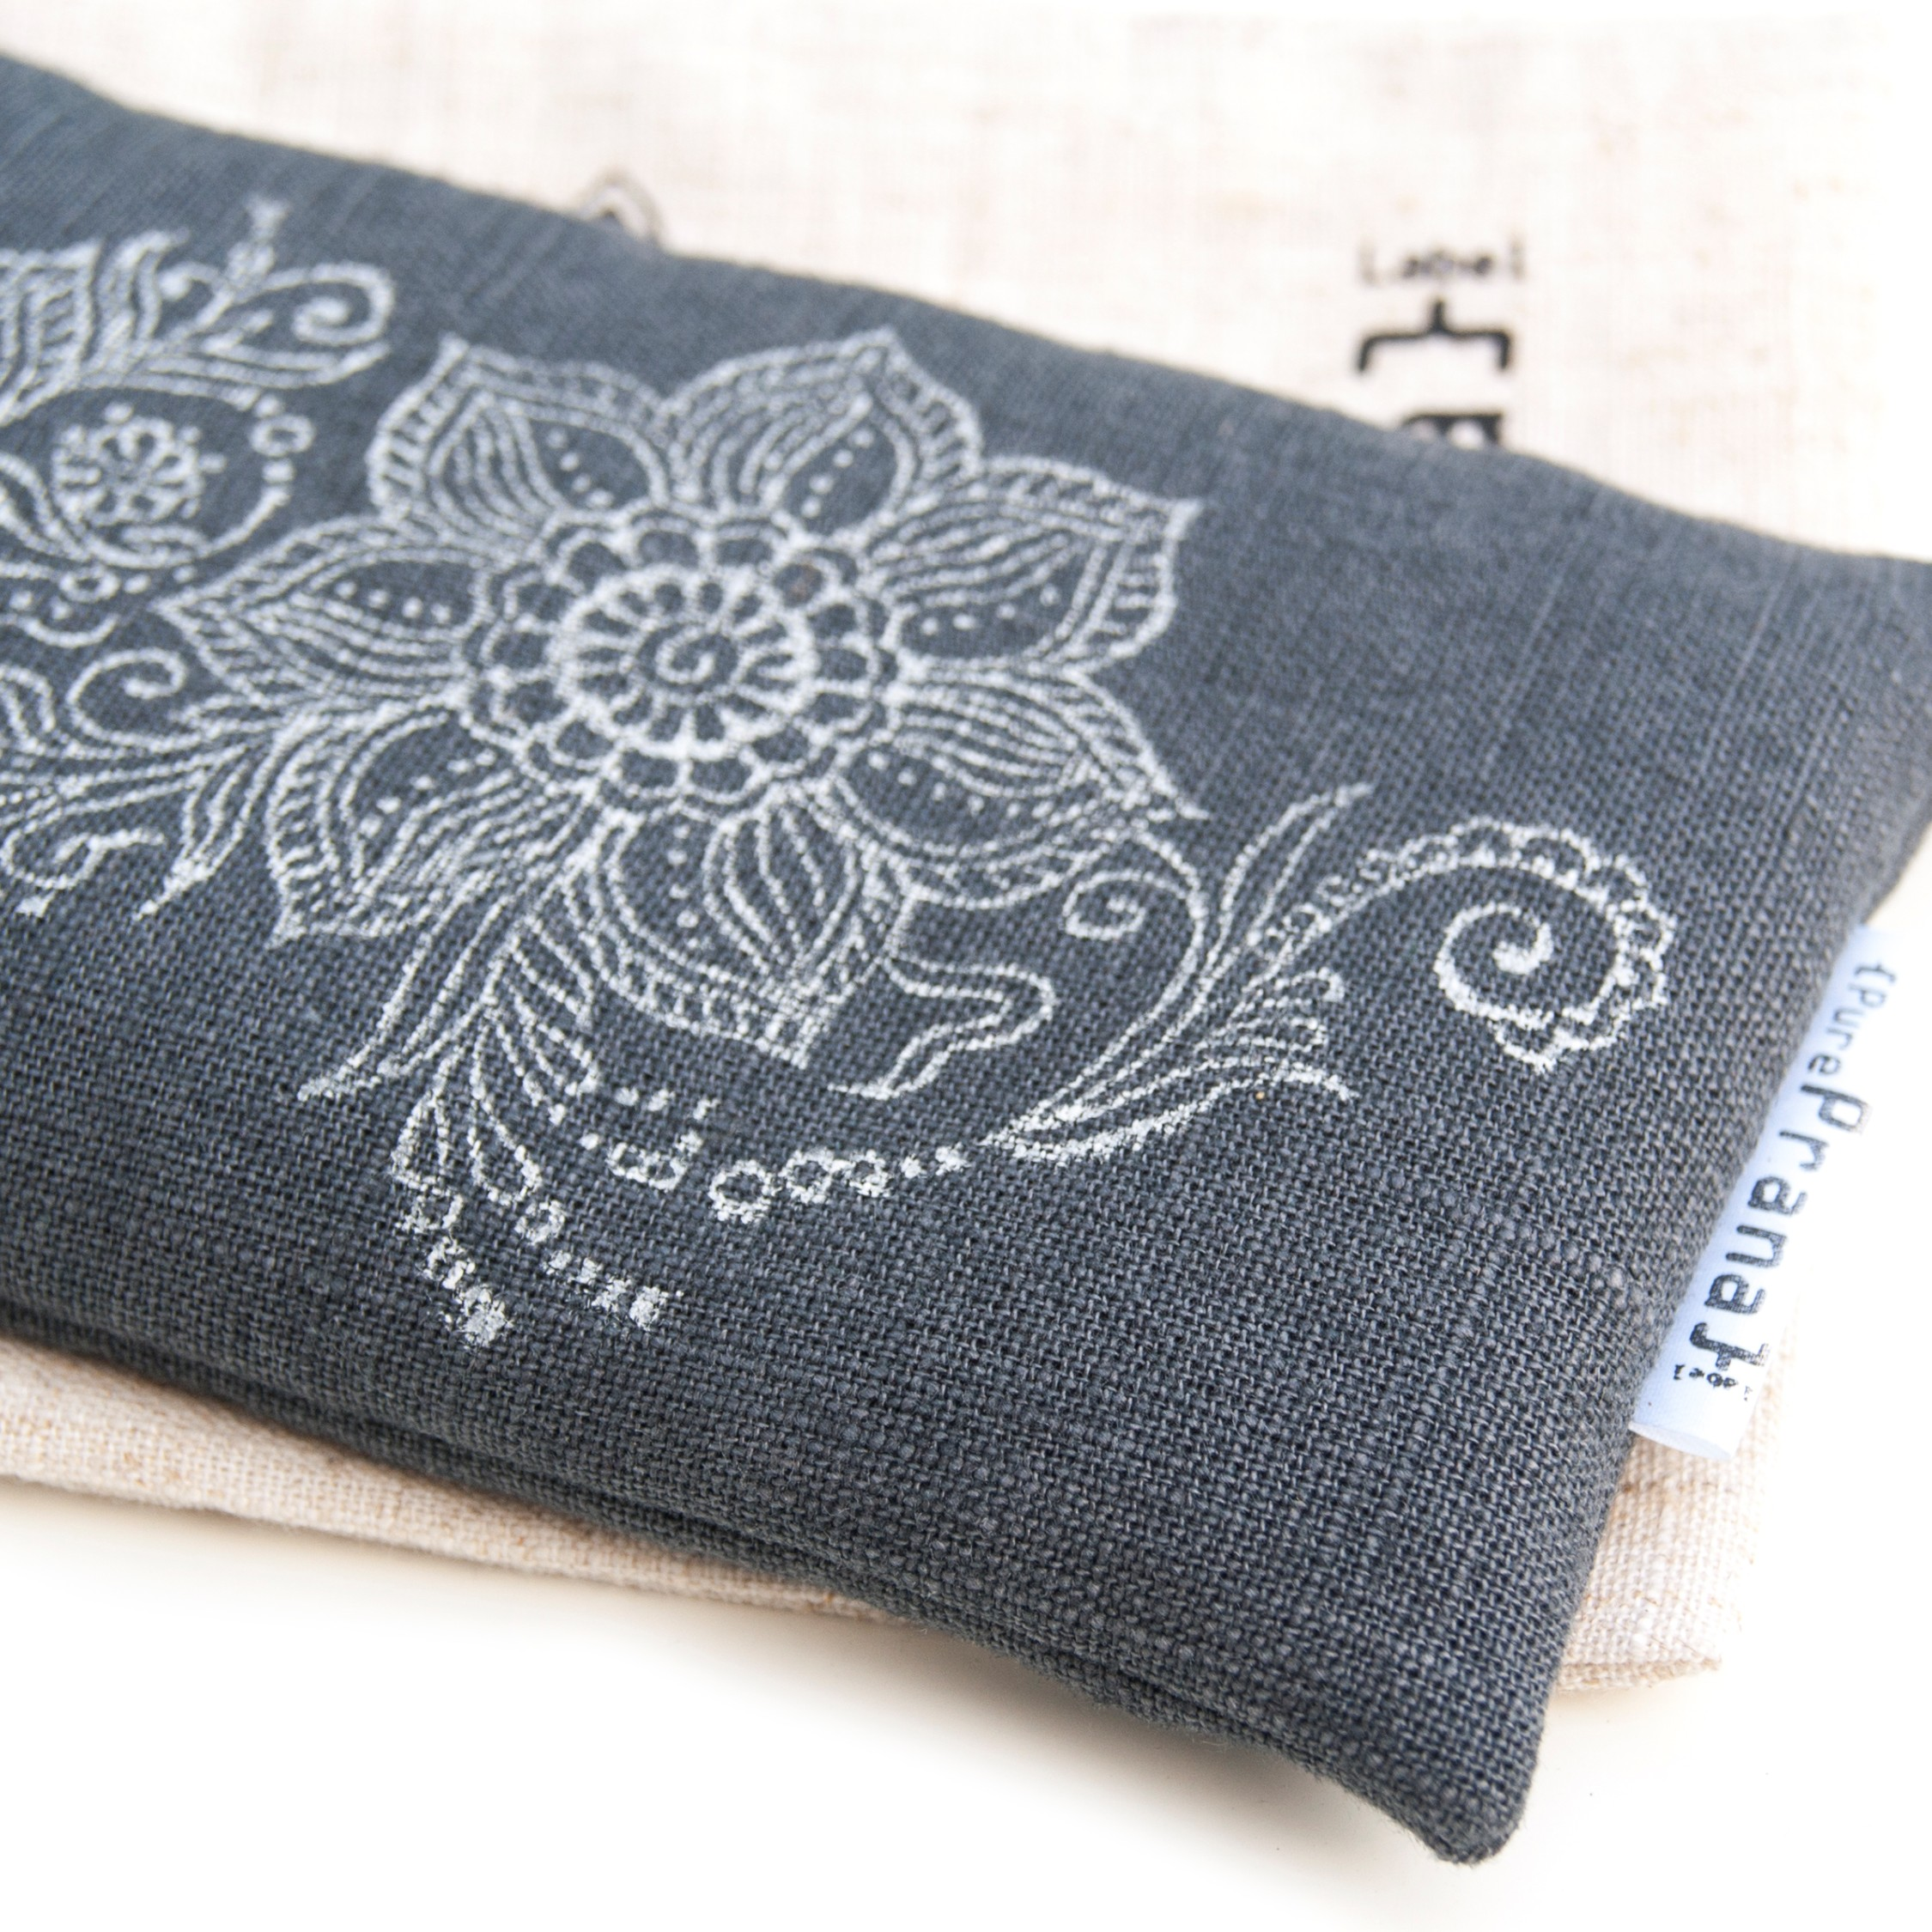 Beautiful authentic print on this yoga eye pillow by Pure Prana Label